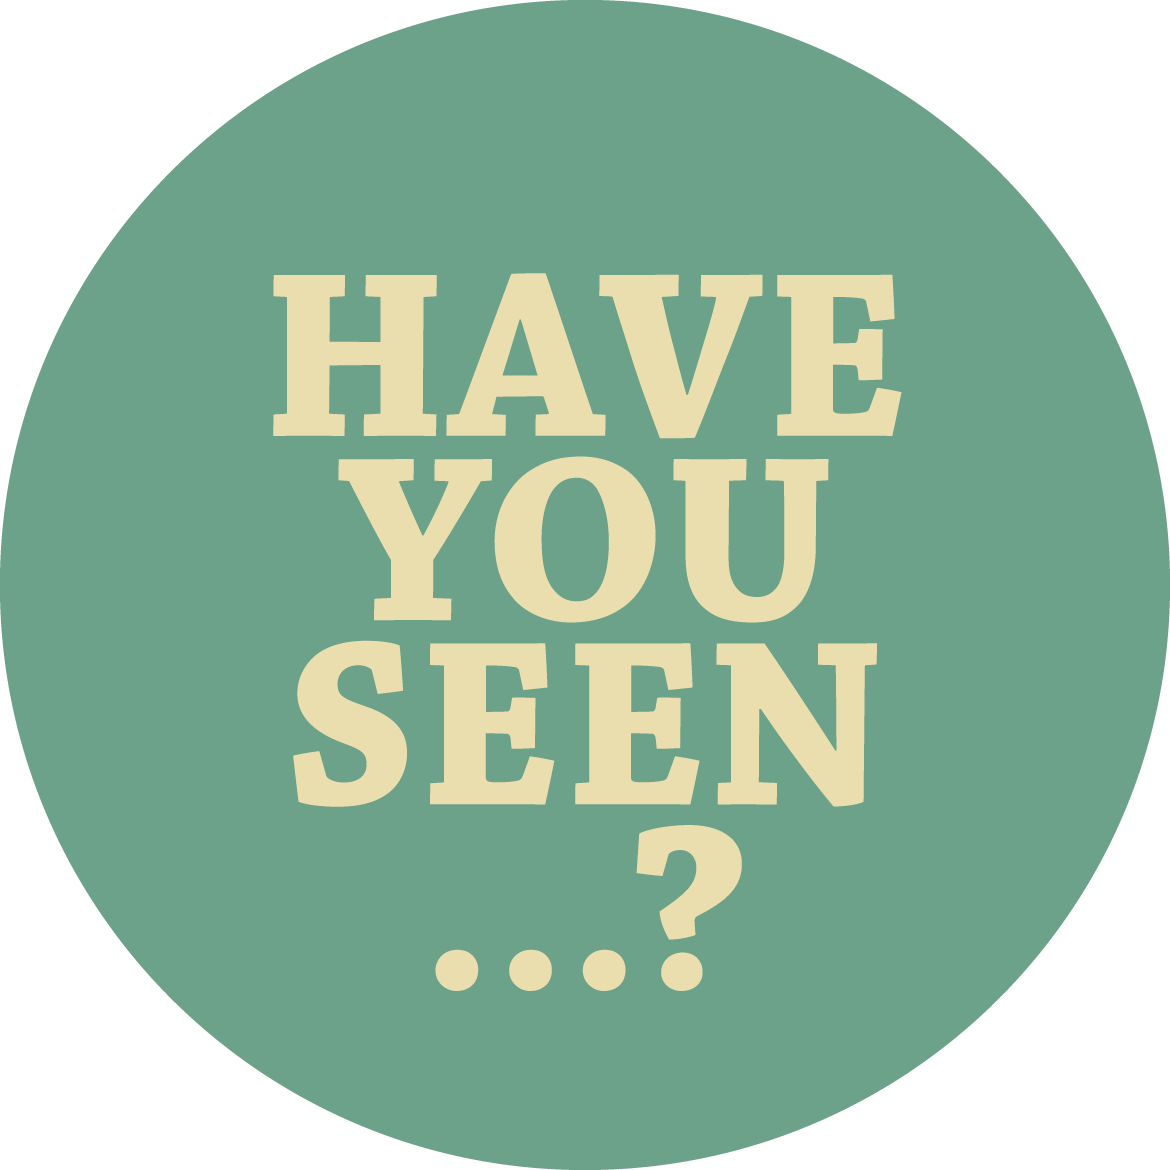 David Thomson's Have You Seen?'s icon